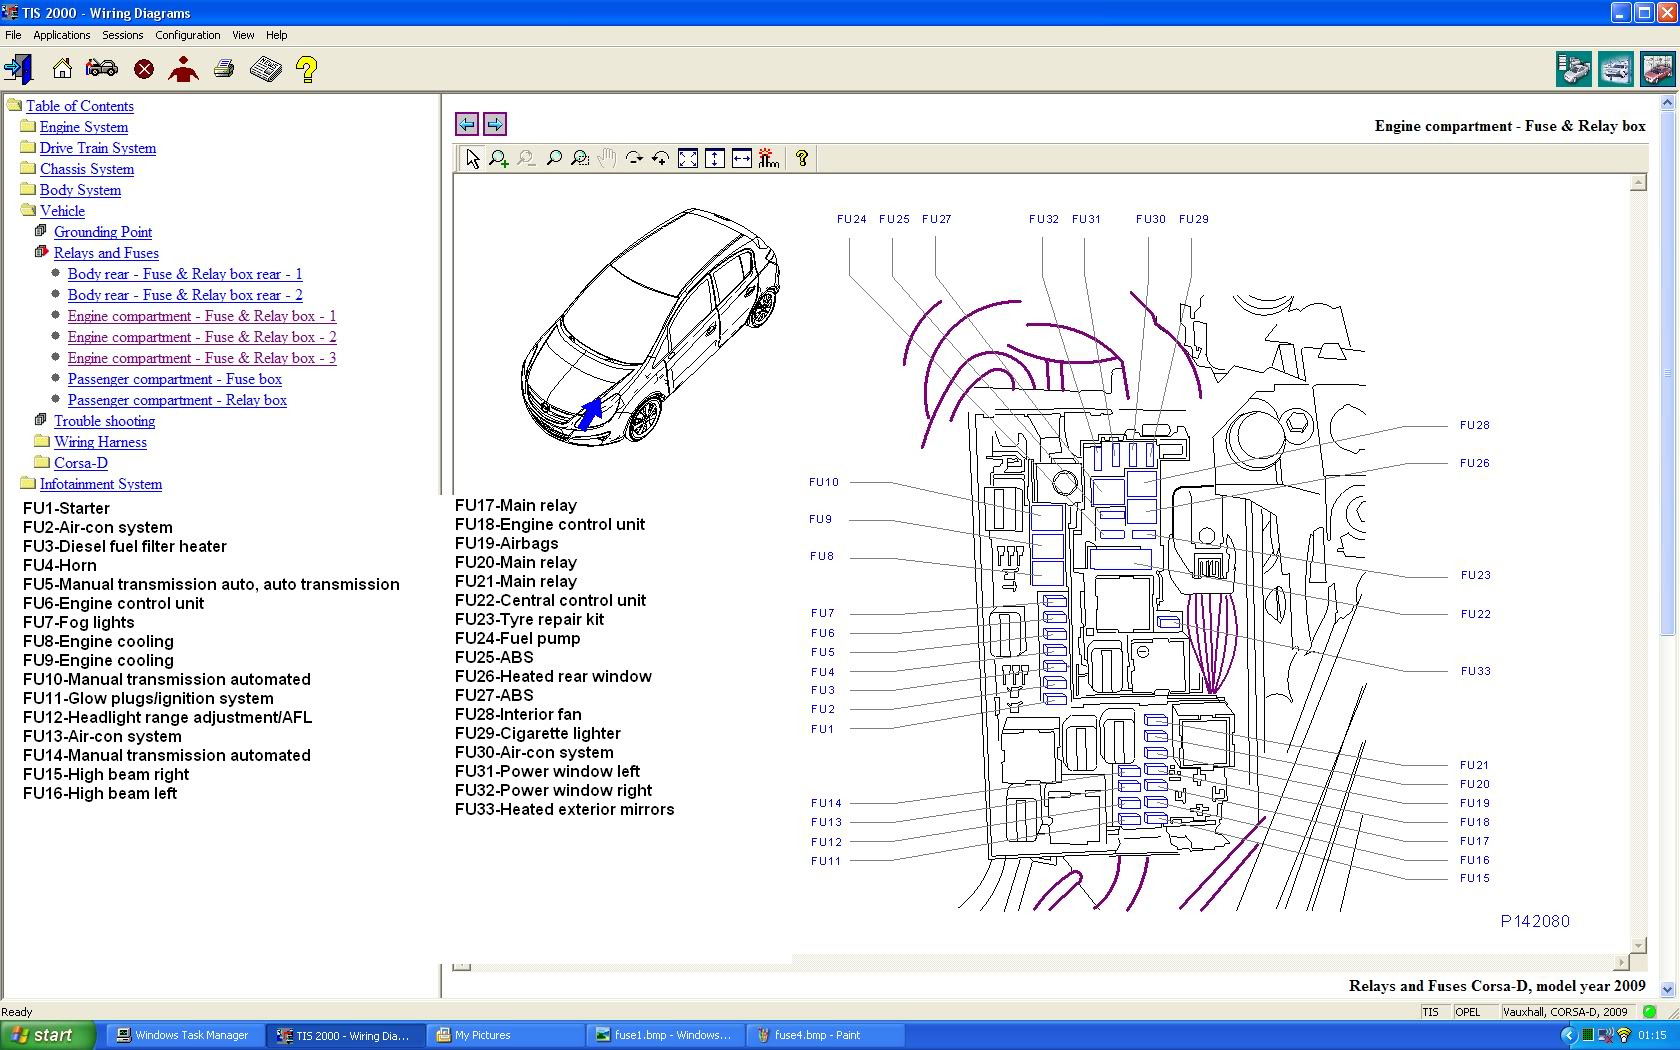 corsa d wiring diagram | wiring library corsa c lights wiring diagram